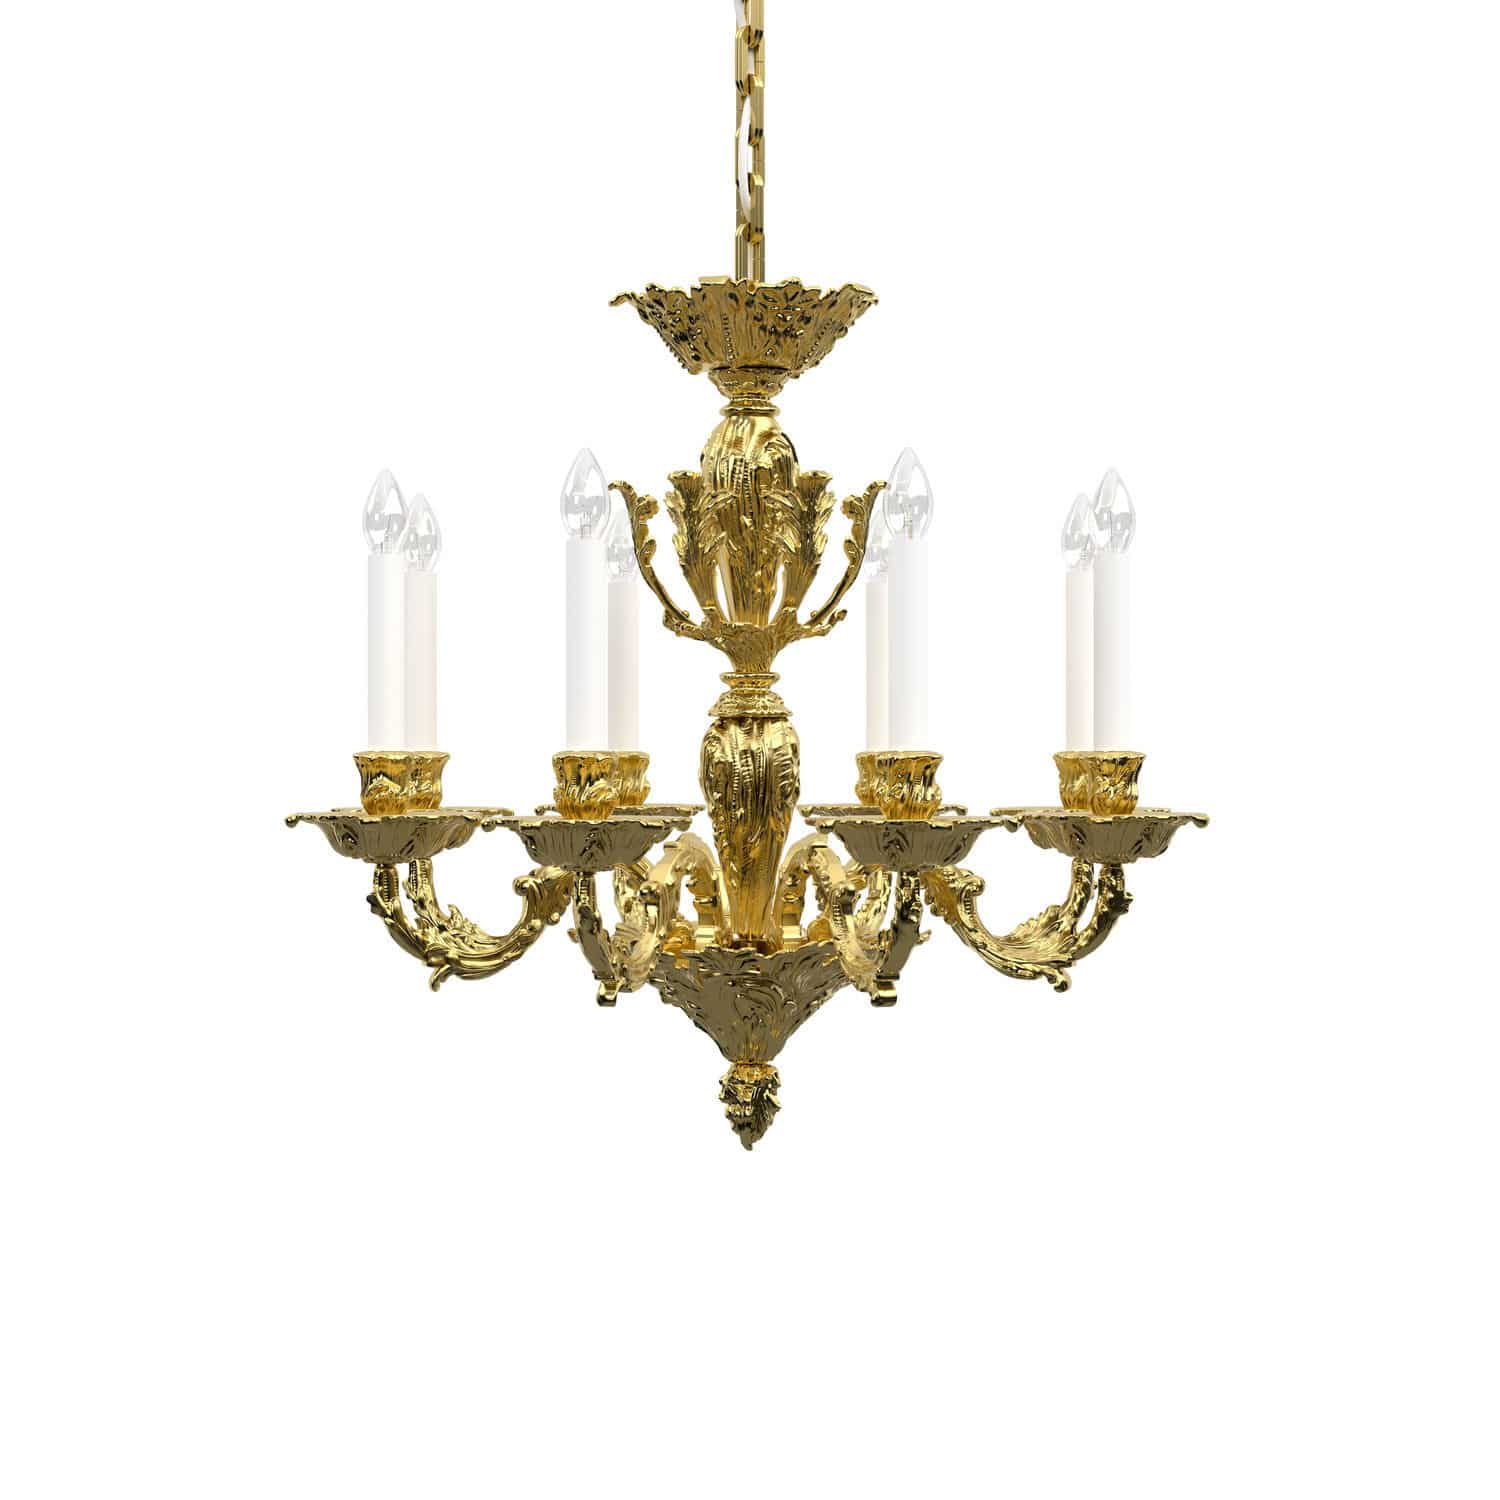 adler alt milano nickel jonathan n category by chandelier lighting modern chand image chandeliers